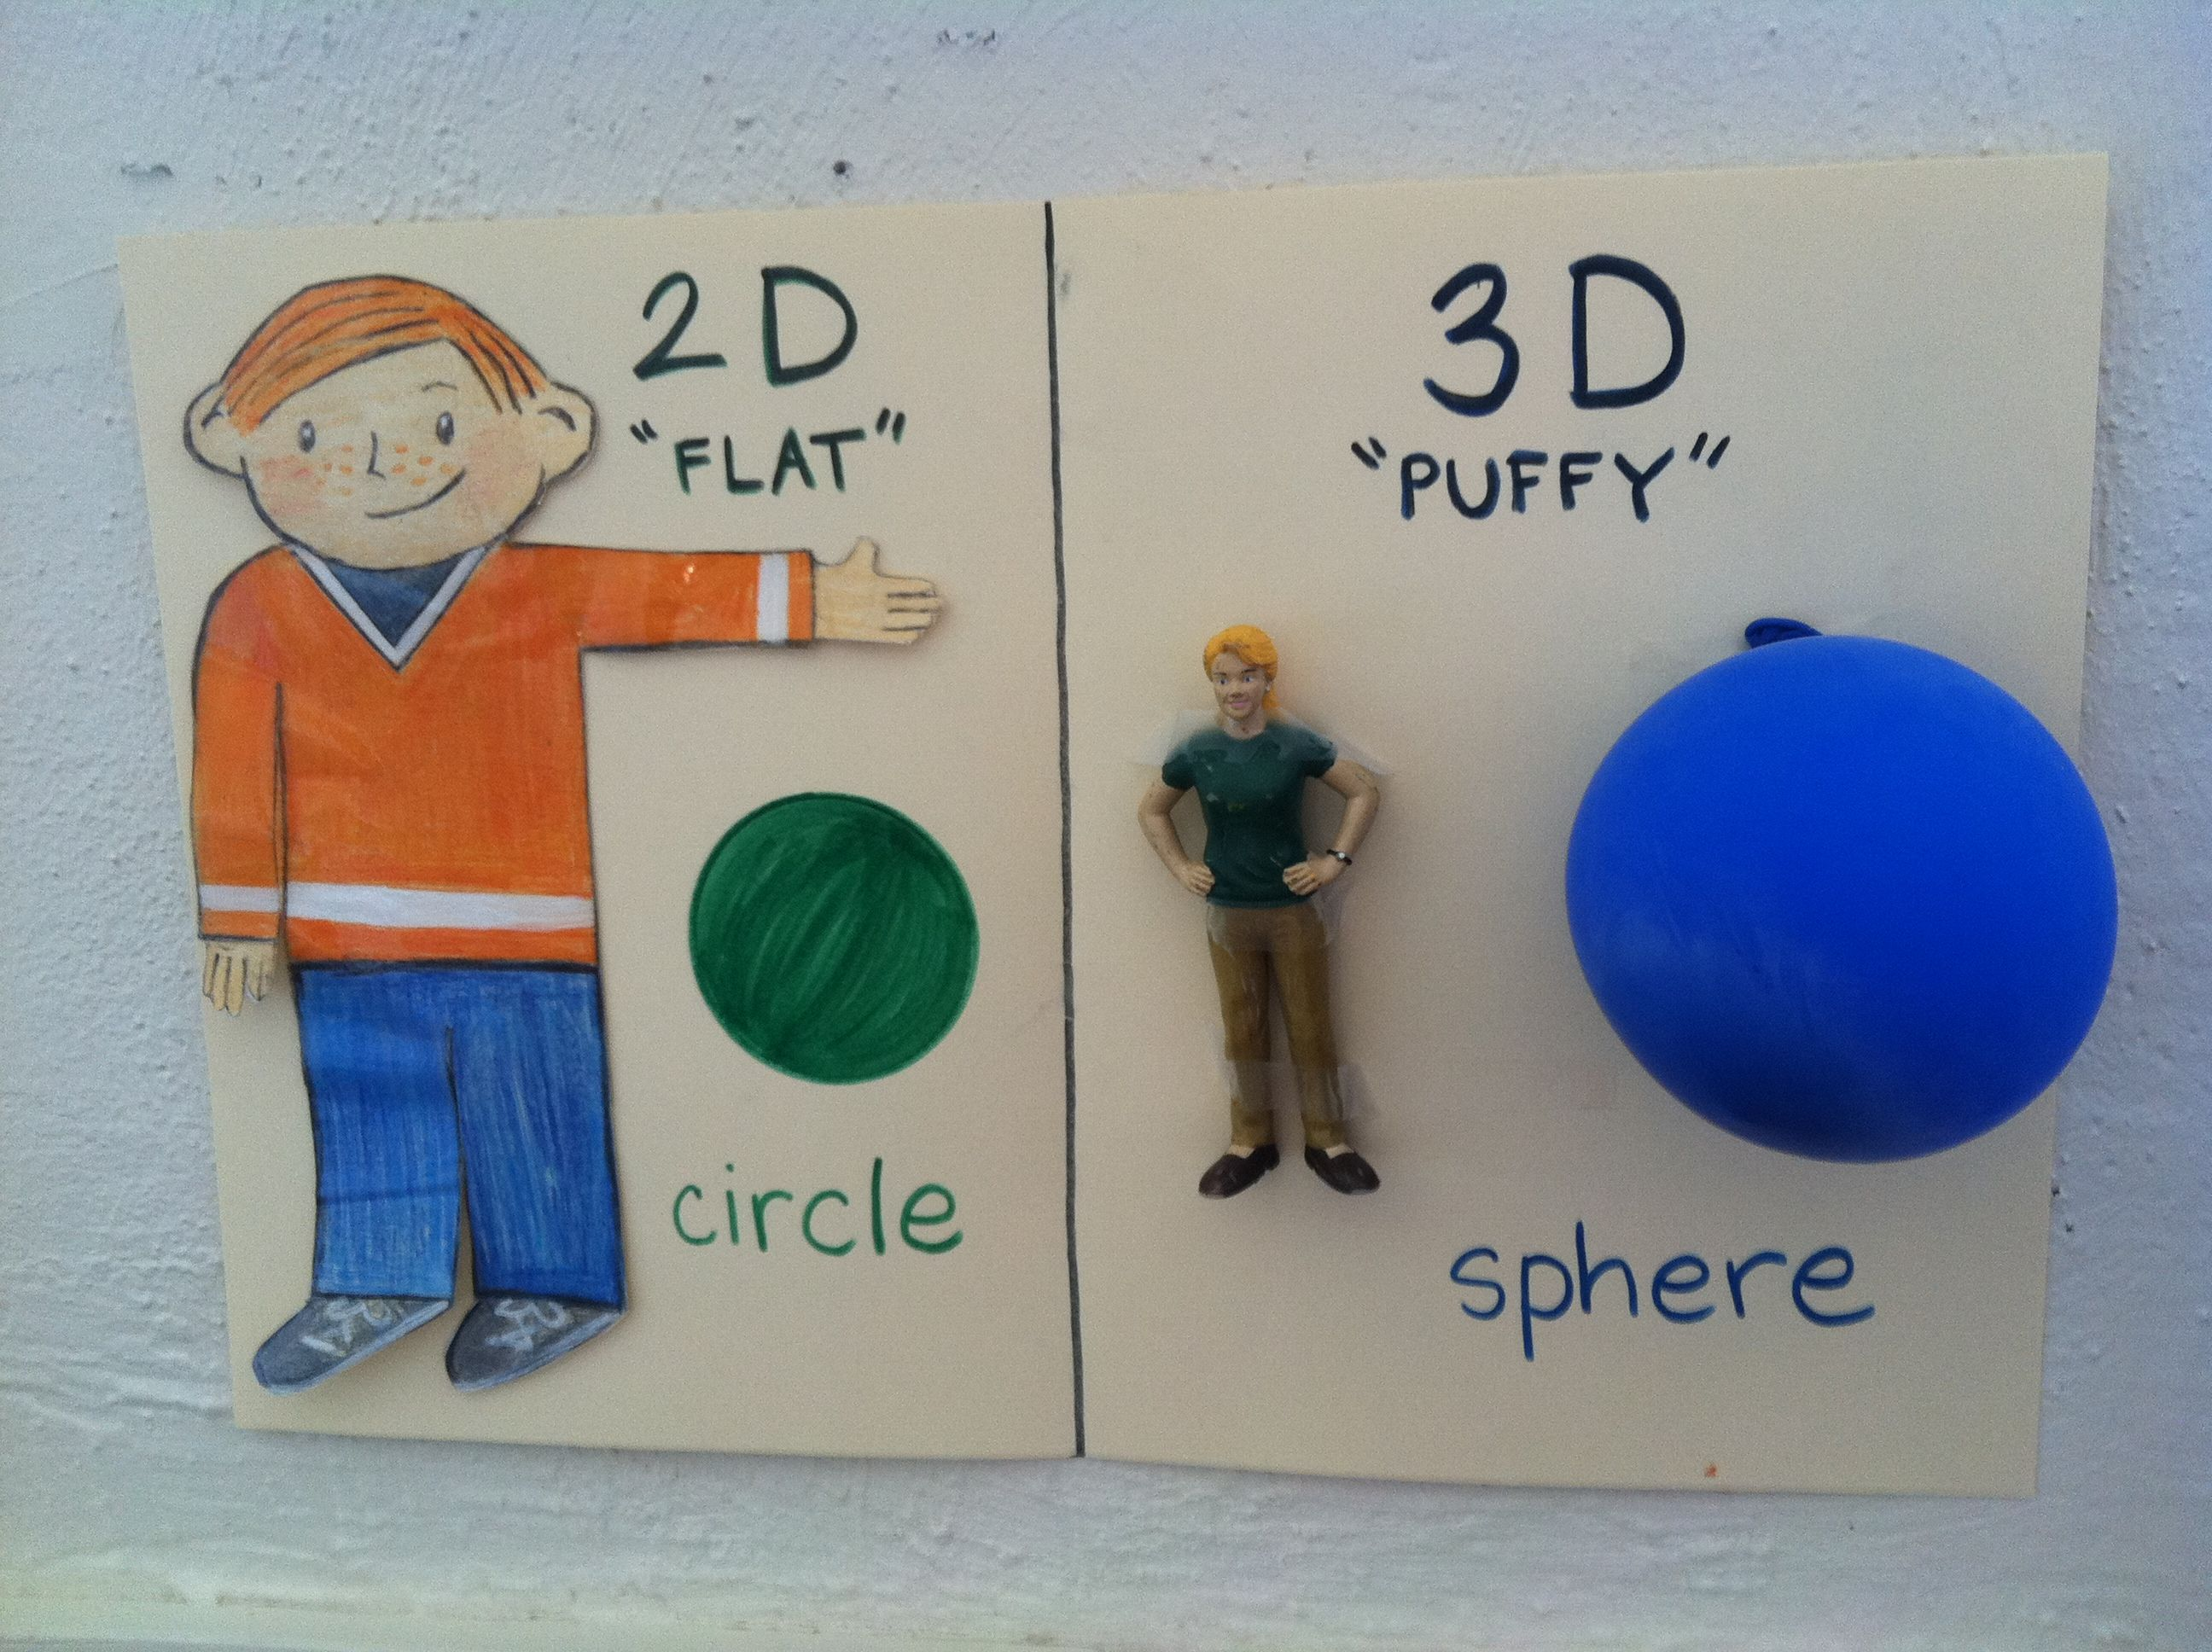 Flat Stanley Was Utilized To Teach About 2d Vs 3d